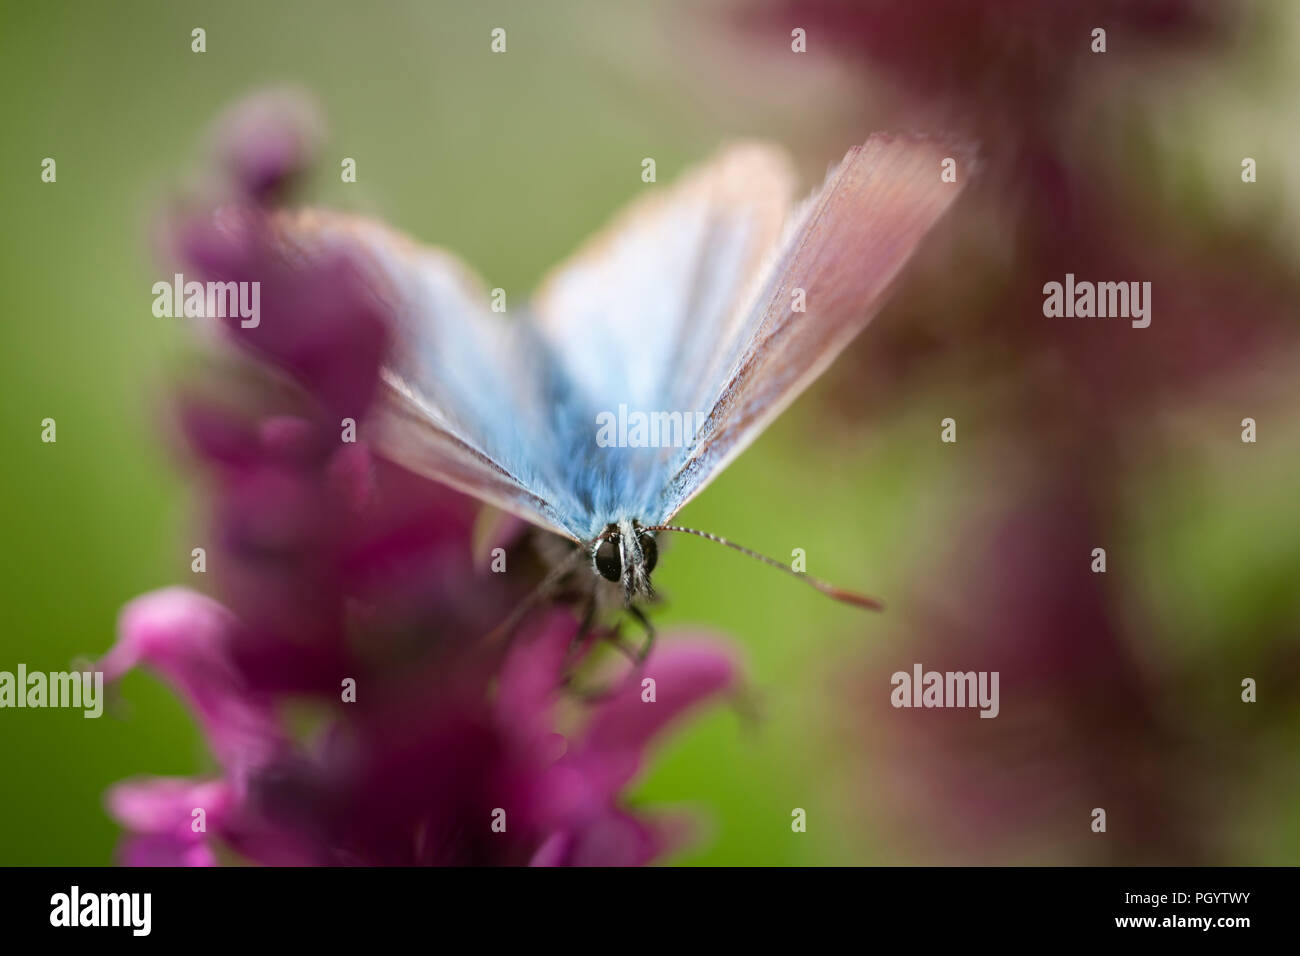 Insects Arbey Lanna Stock Photo